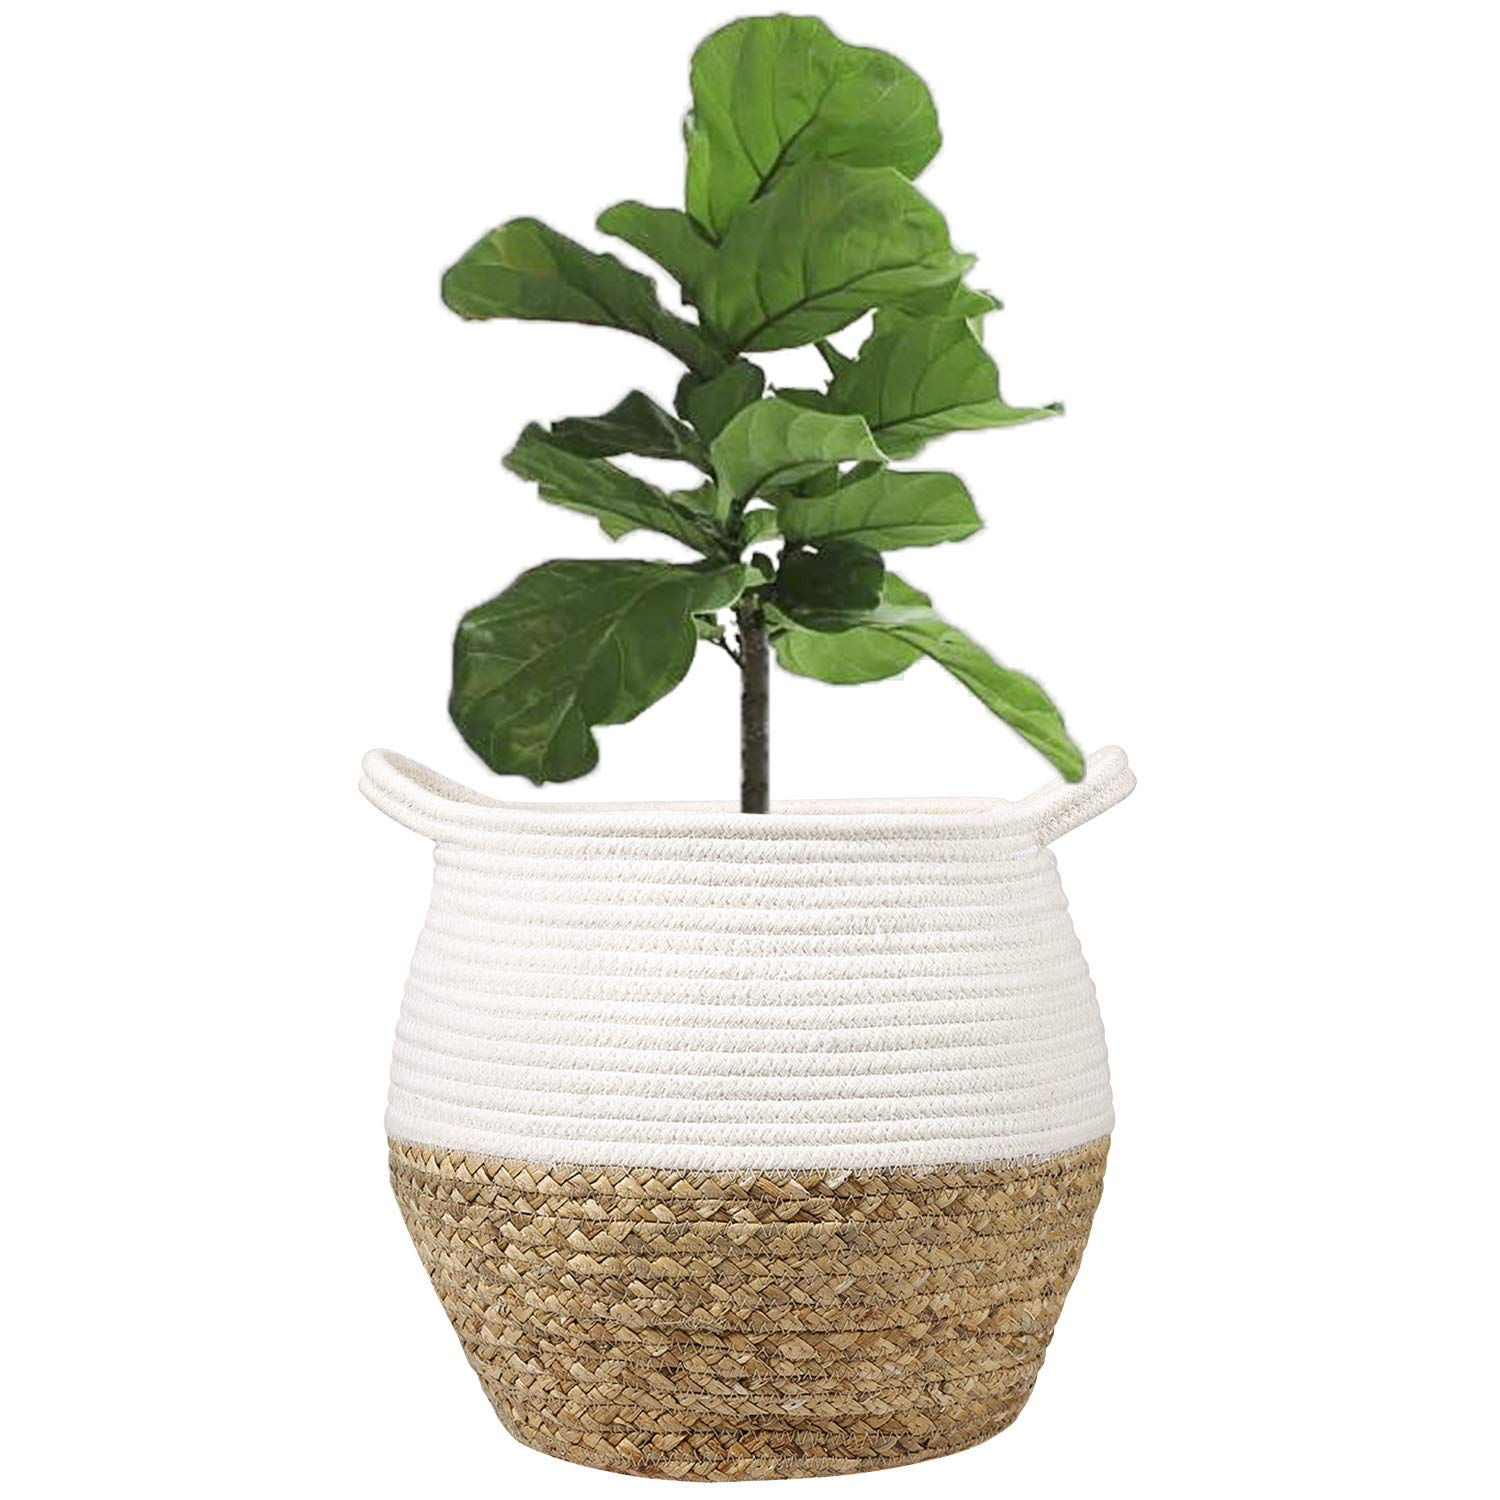 """LEEPES Natural Grass Weave Planter Basket Cotton Rope Belly Basket Home Décor Accent, Organizer, Basket for Plant (up to 8"""" Pot), Indoor Planter, Nursery Laundry Hamper, Creative Storage"""